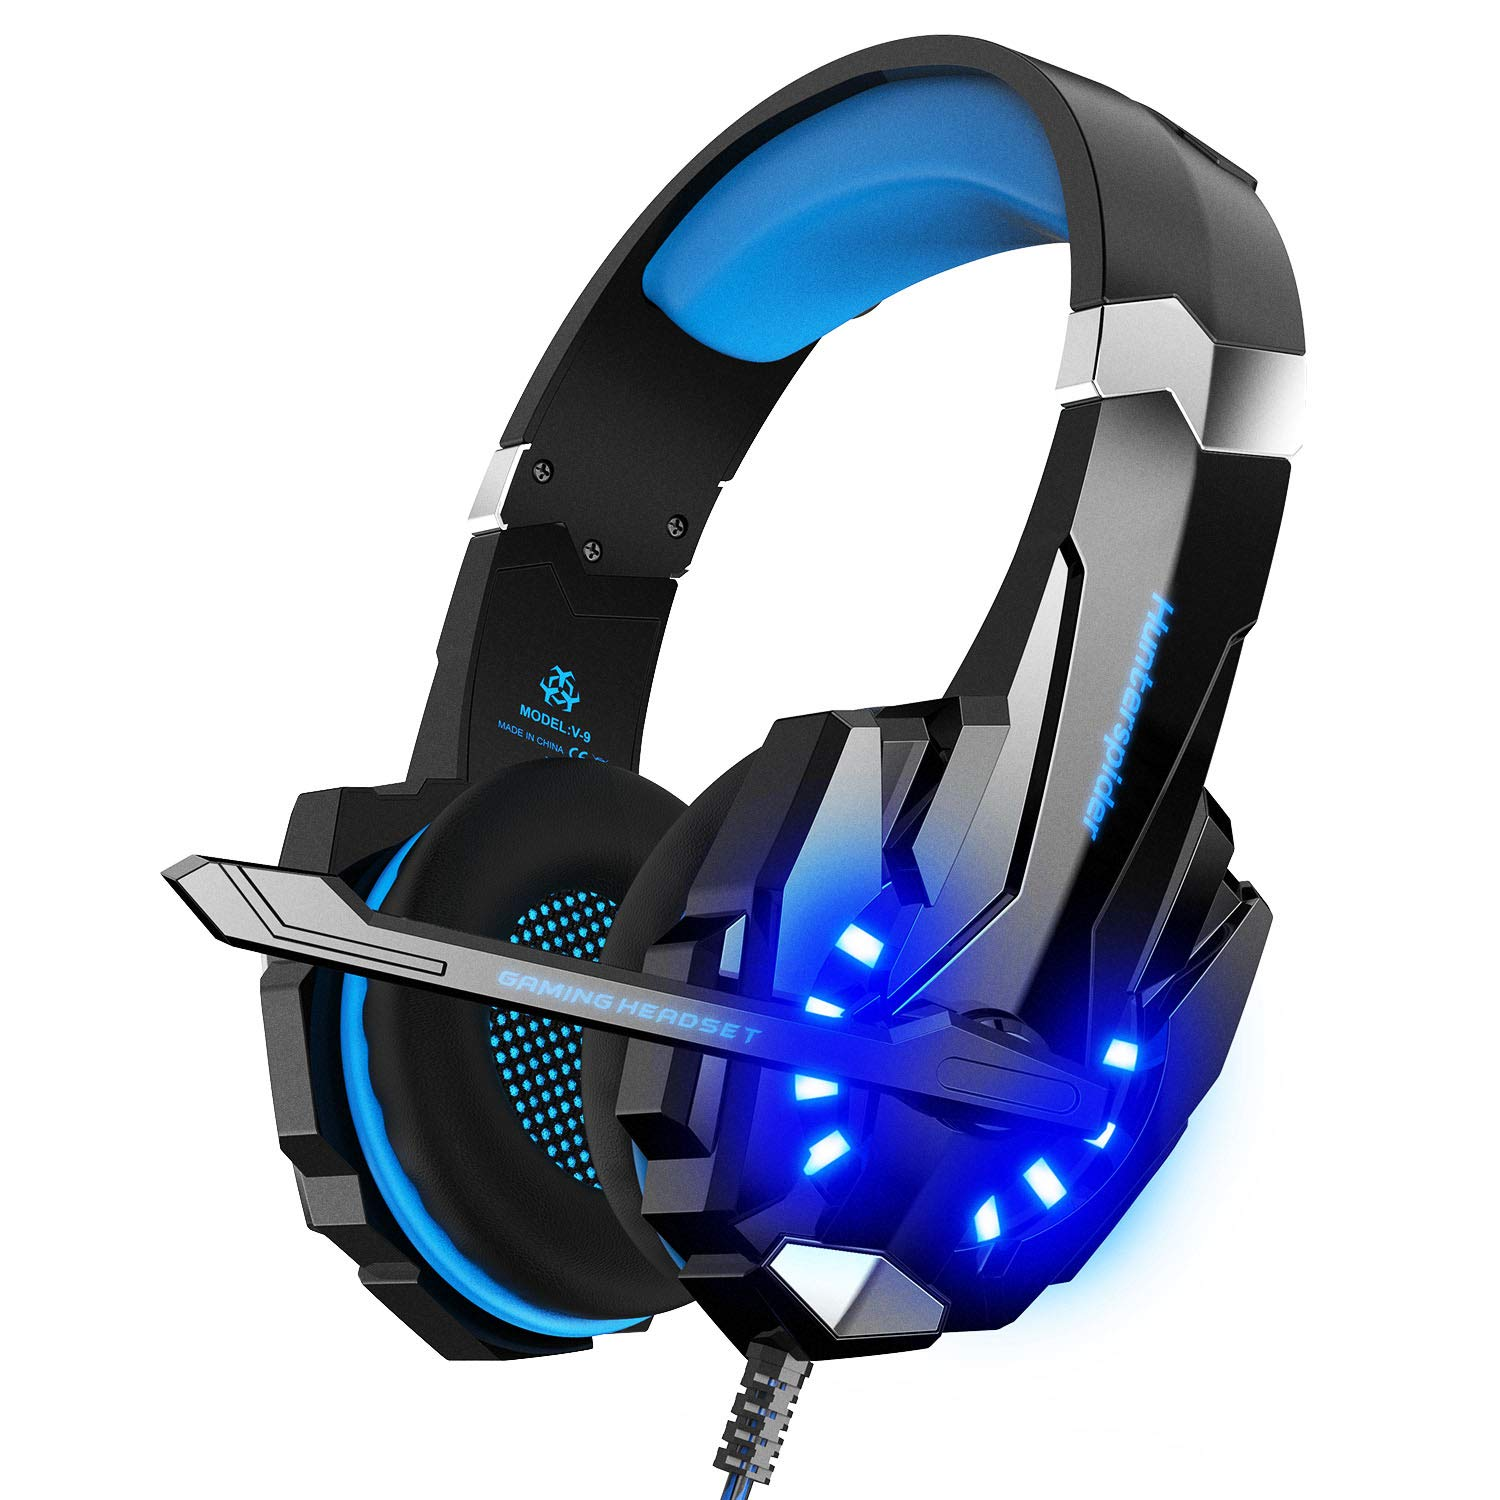 Noise Cancelling Stereo Gaming Headset Over Ear Headphones for PS4 PC Xbox One Controller Mobile Phone Laptop Mac Nintendo Switch Games with Mic LED Light Bass Surround Soft  Memory Earmuffs by Hunterspider